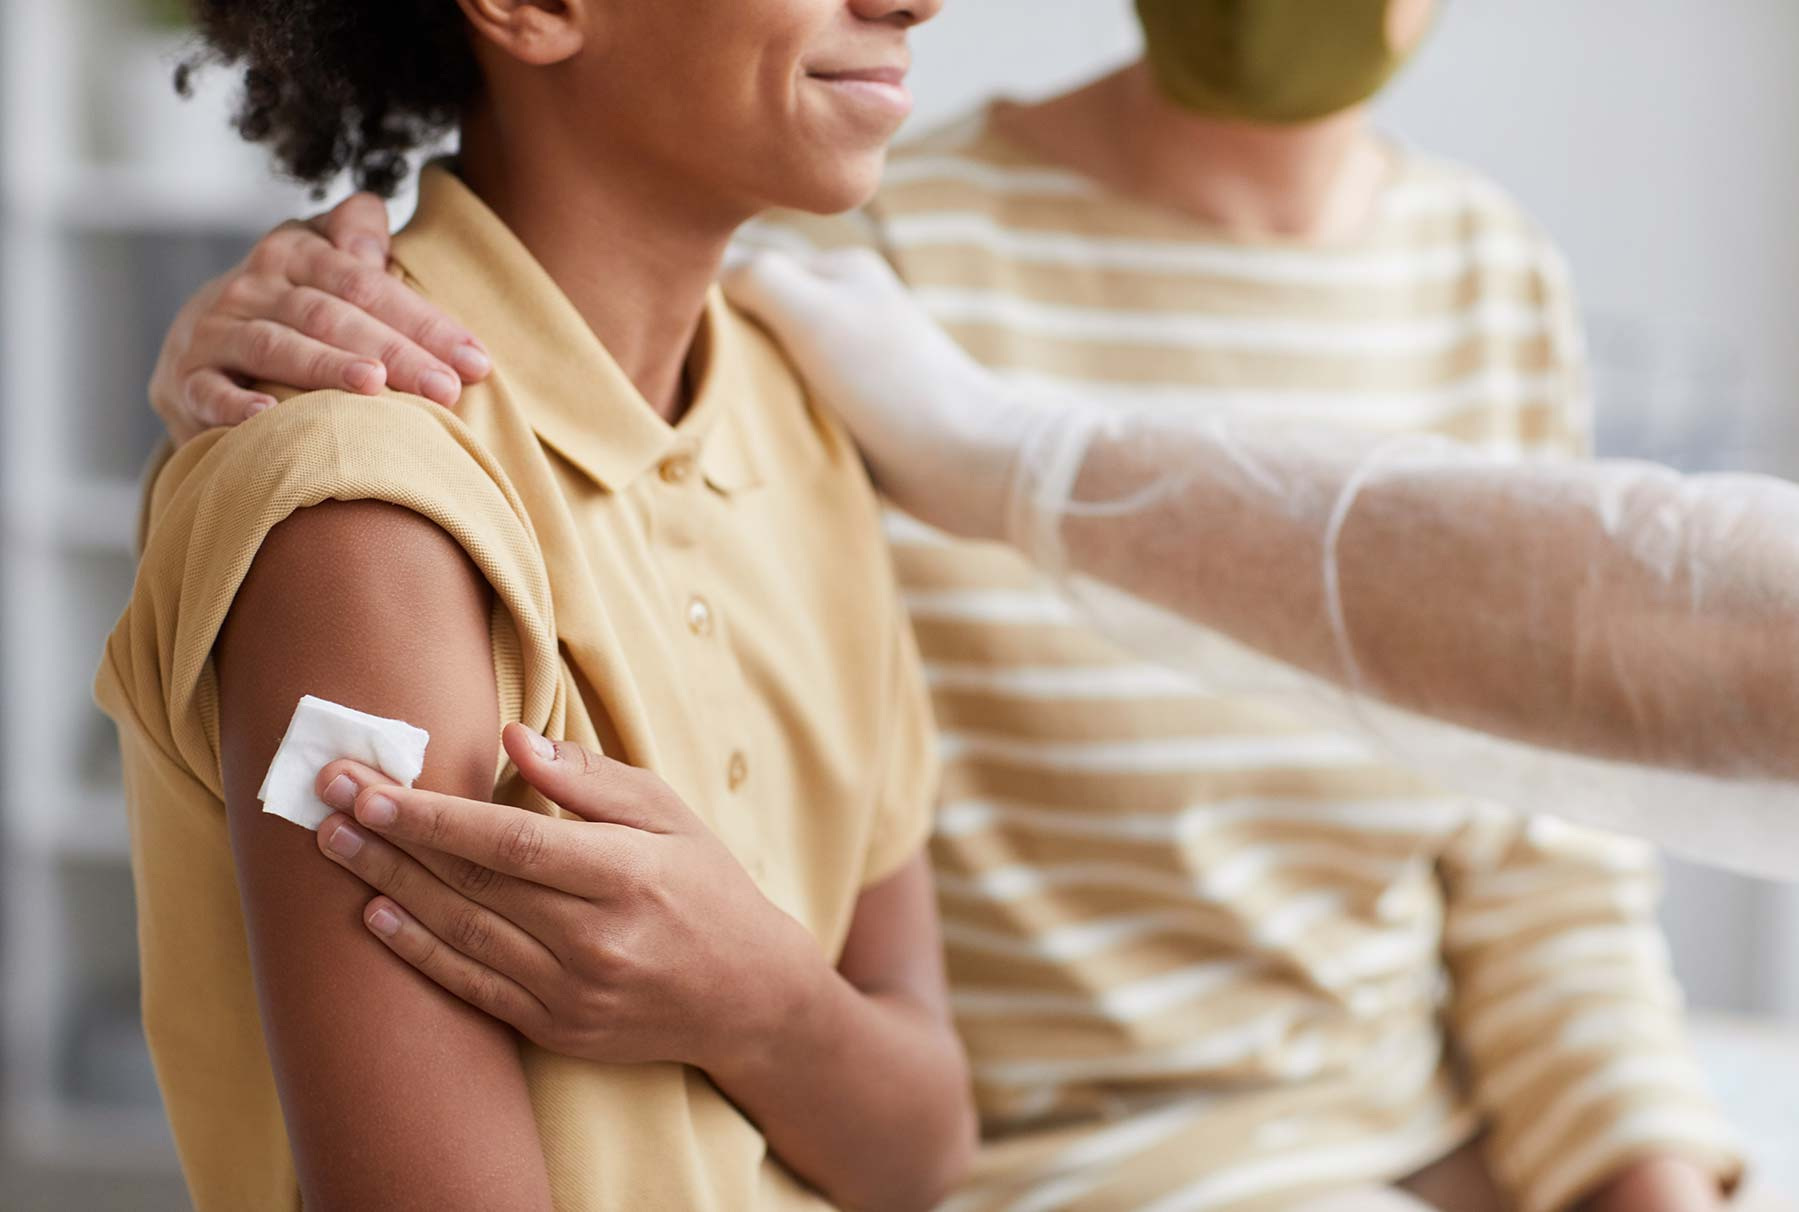 Young person who just received a vaccine shot, holding a swab to their arm and smiling.